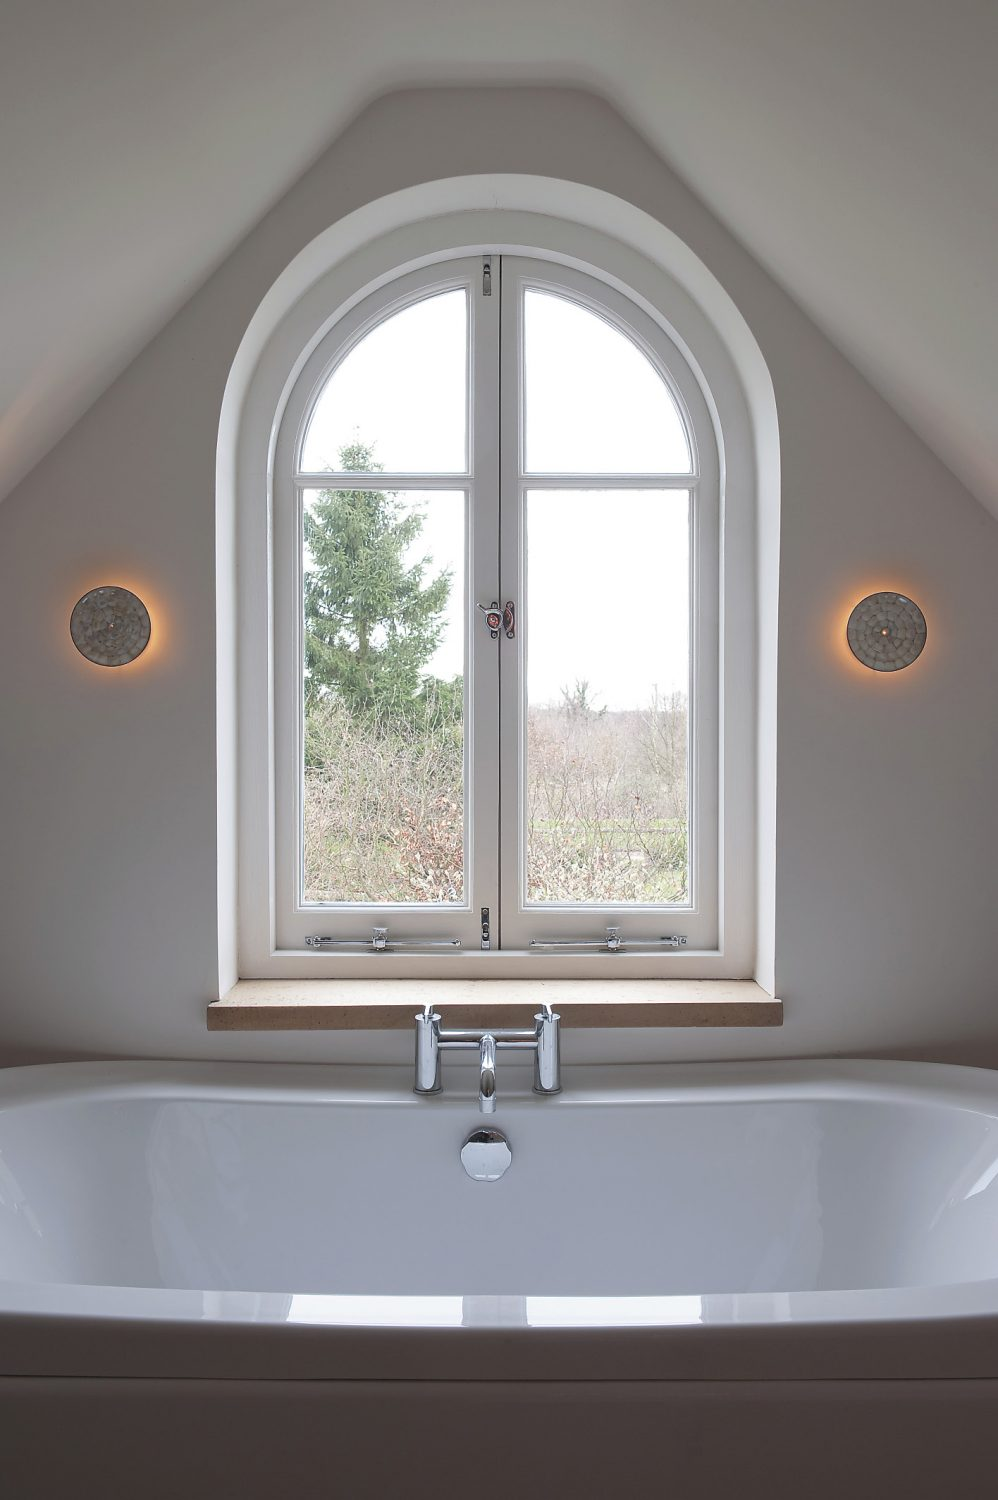 the arched window in Sally's bathroom looks out over farmland